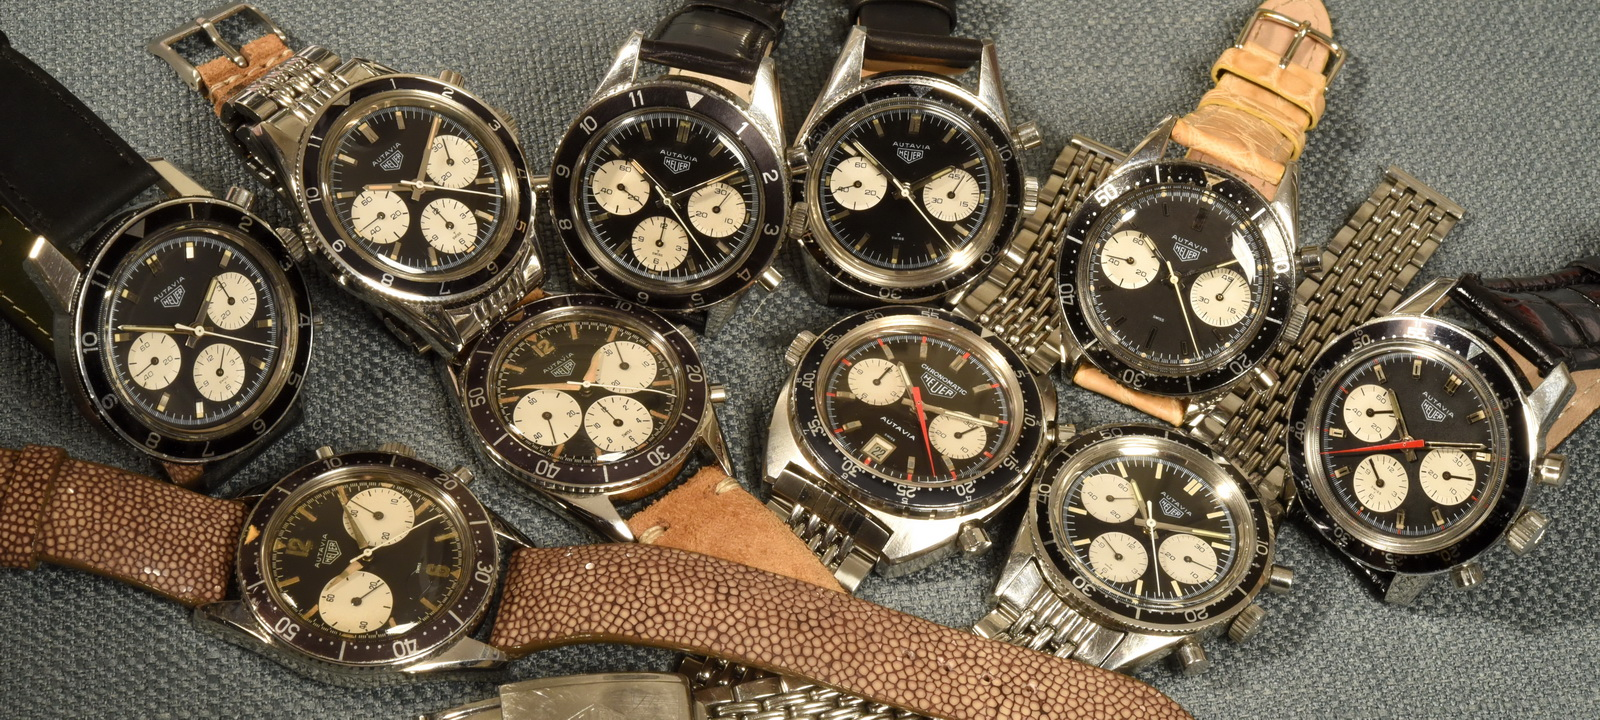 These 10 Autavias cover the range from the very first models, introduced in 1962, to the first automatic Autavia, introduced in 1969